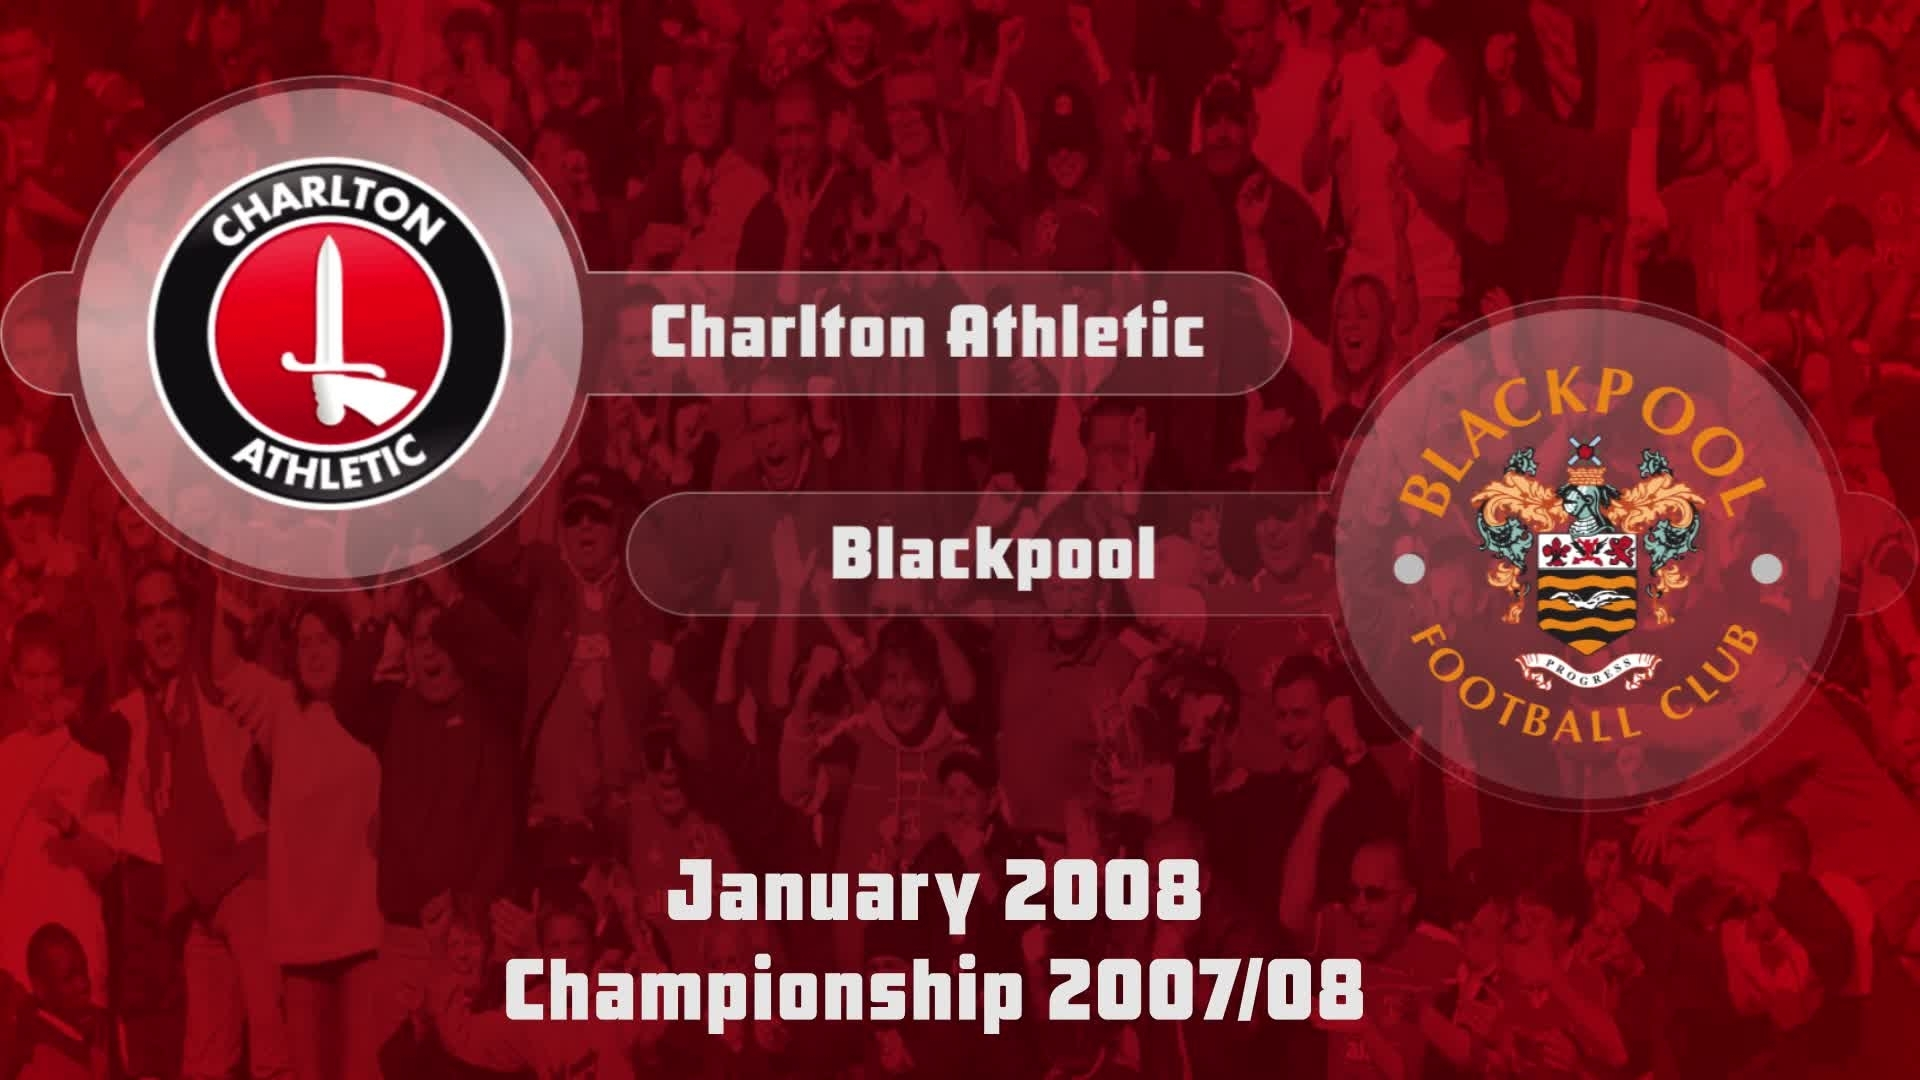 31 HIGHLIGHTS | Charlton 4 Blackpool 1 (Jan 2008)